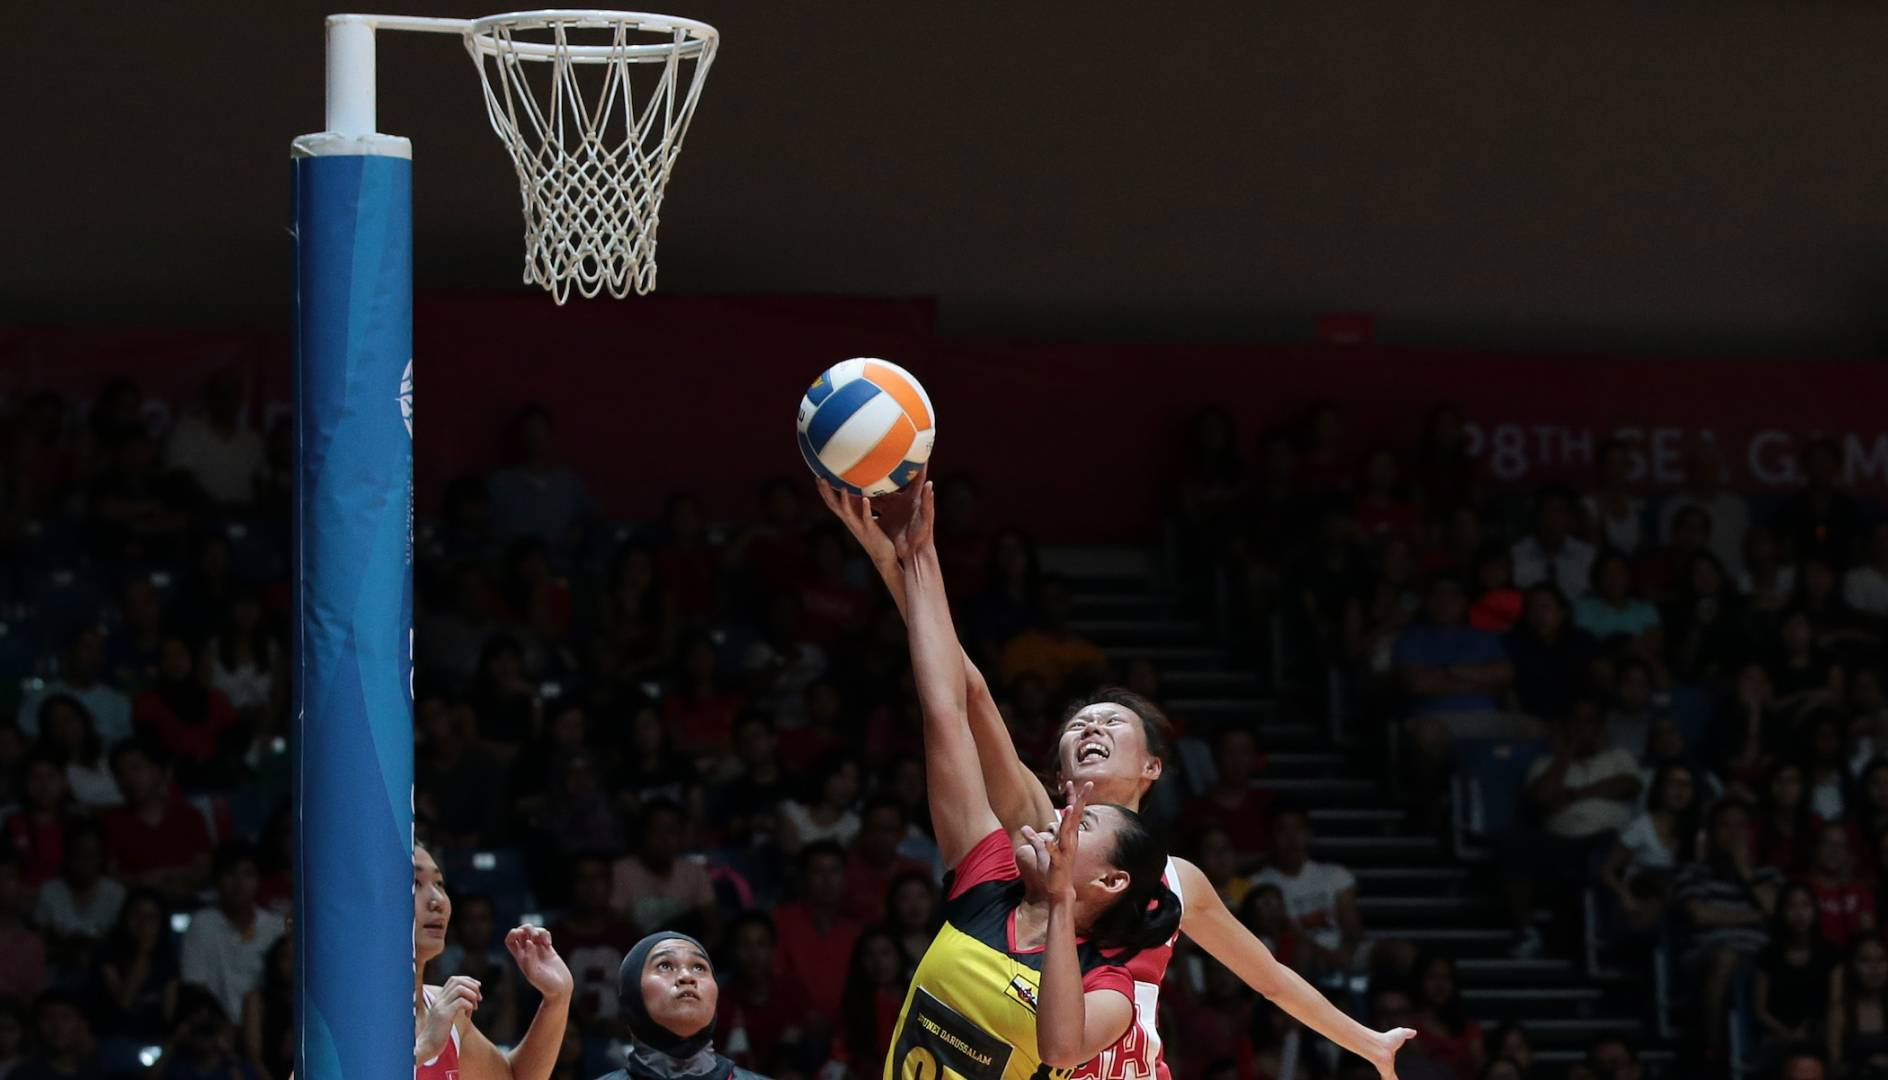 netball world cup - HD 1888×1080